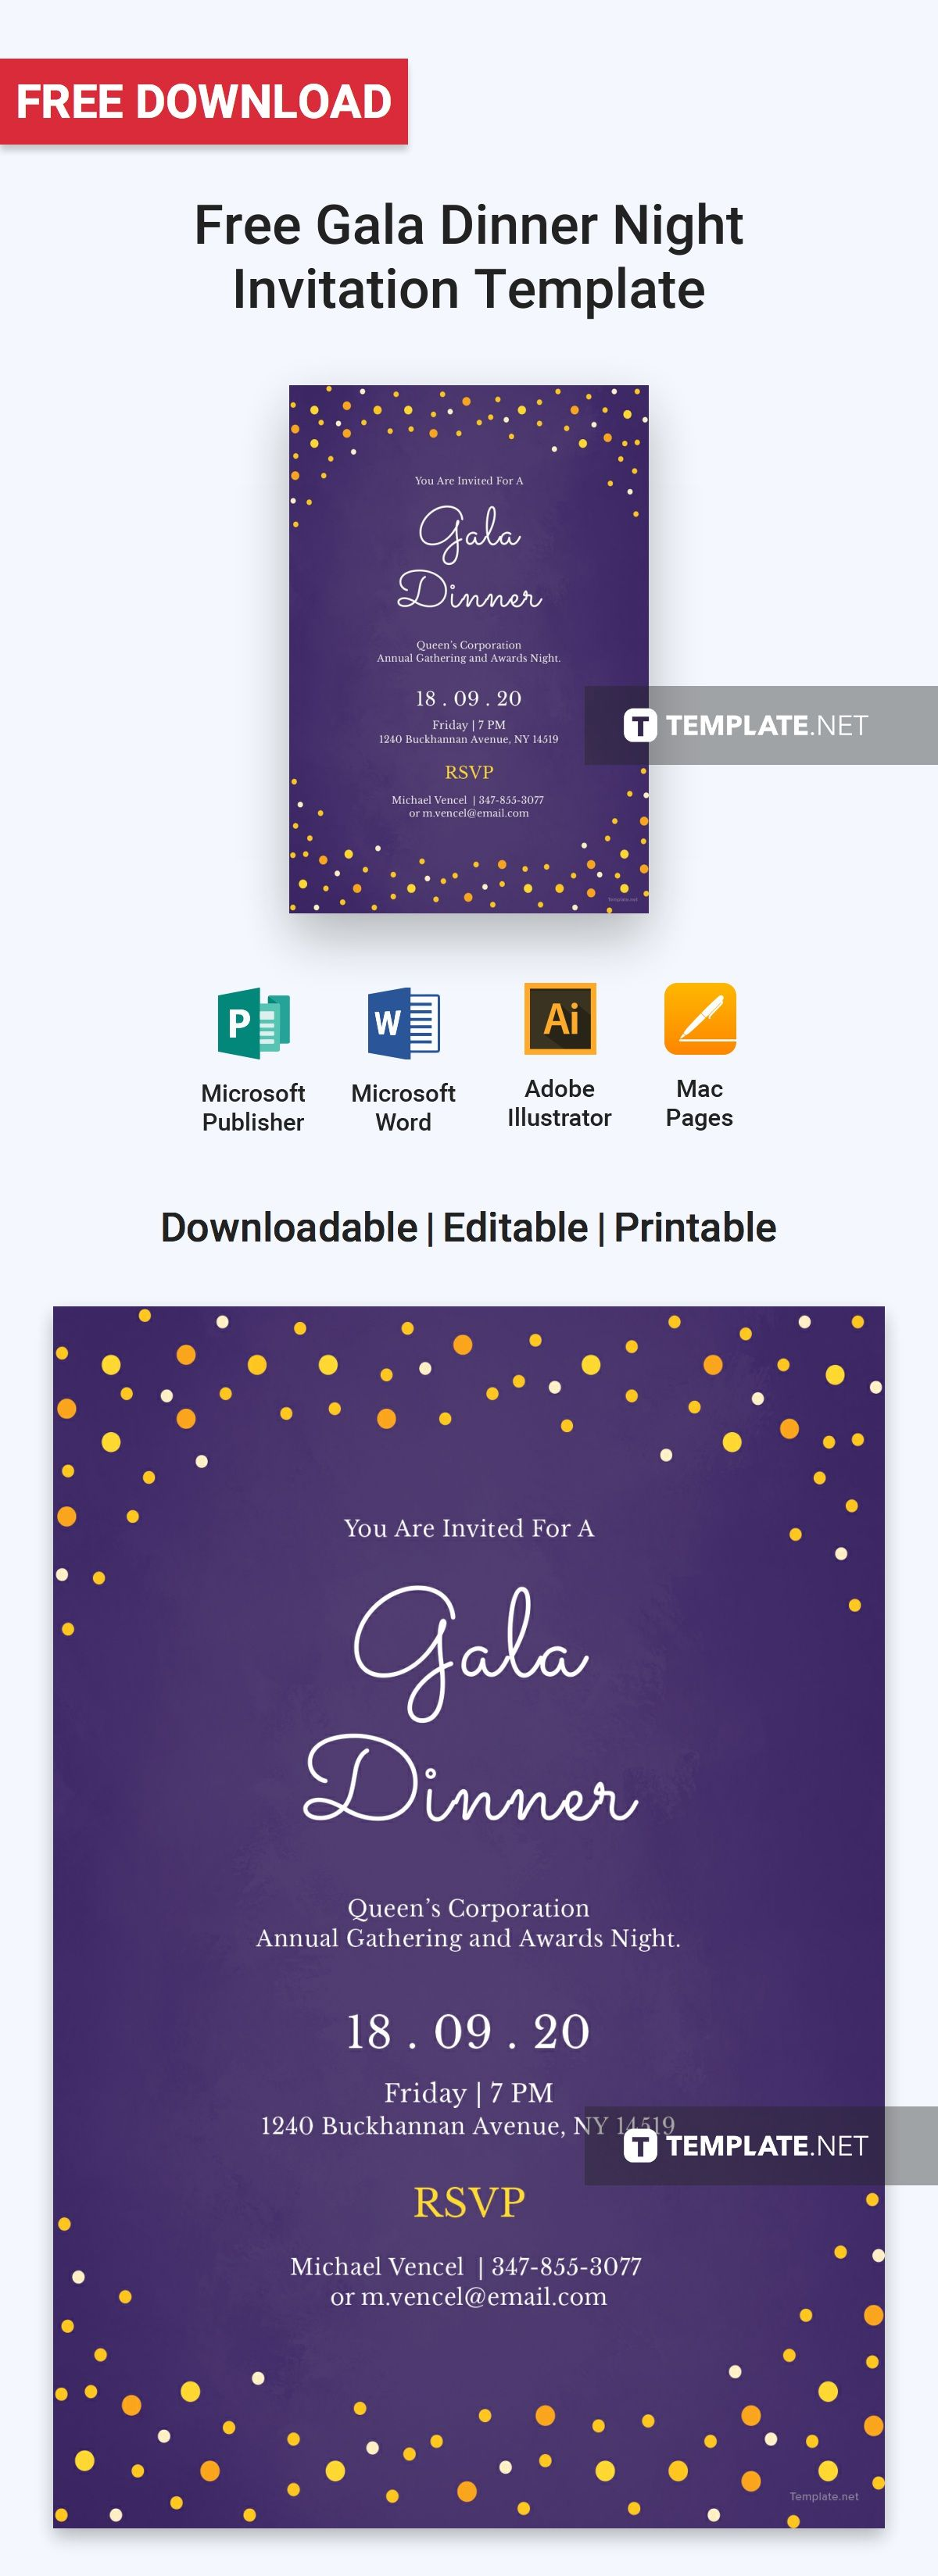 Gala Dinner Night Invitation Template Free Pdf Word Psd Apple Pages Illustrator Publisher Invitation Template Gala Dinner Invitations